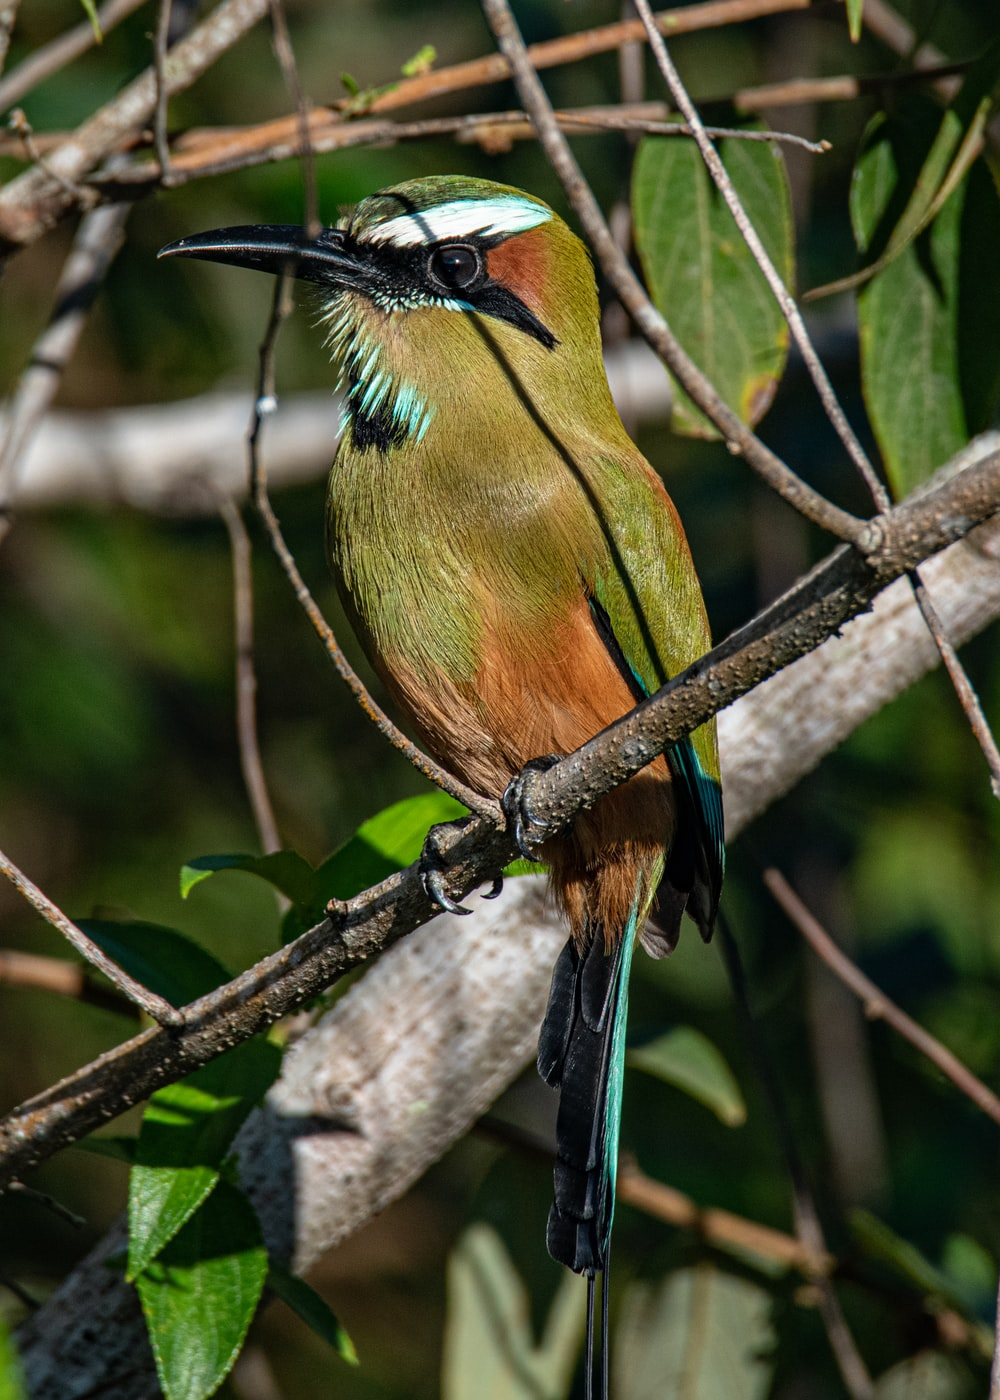 green and brown bird on brown tree branch during daytime